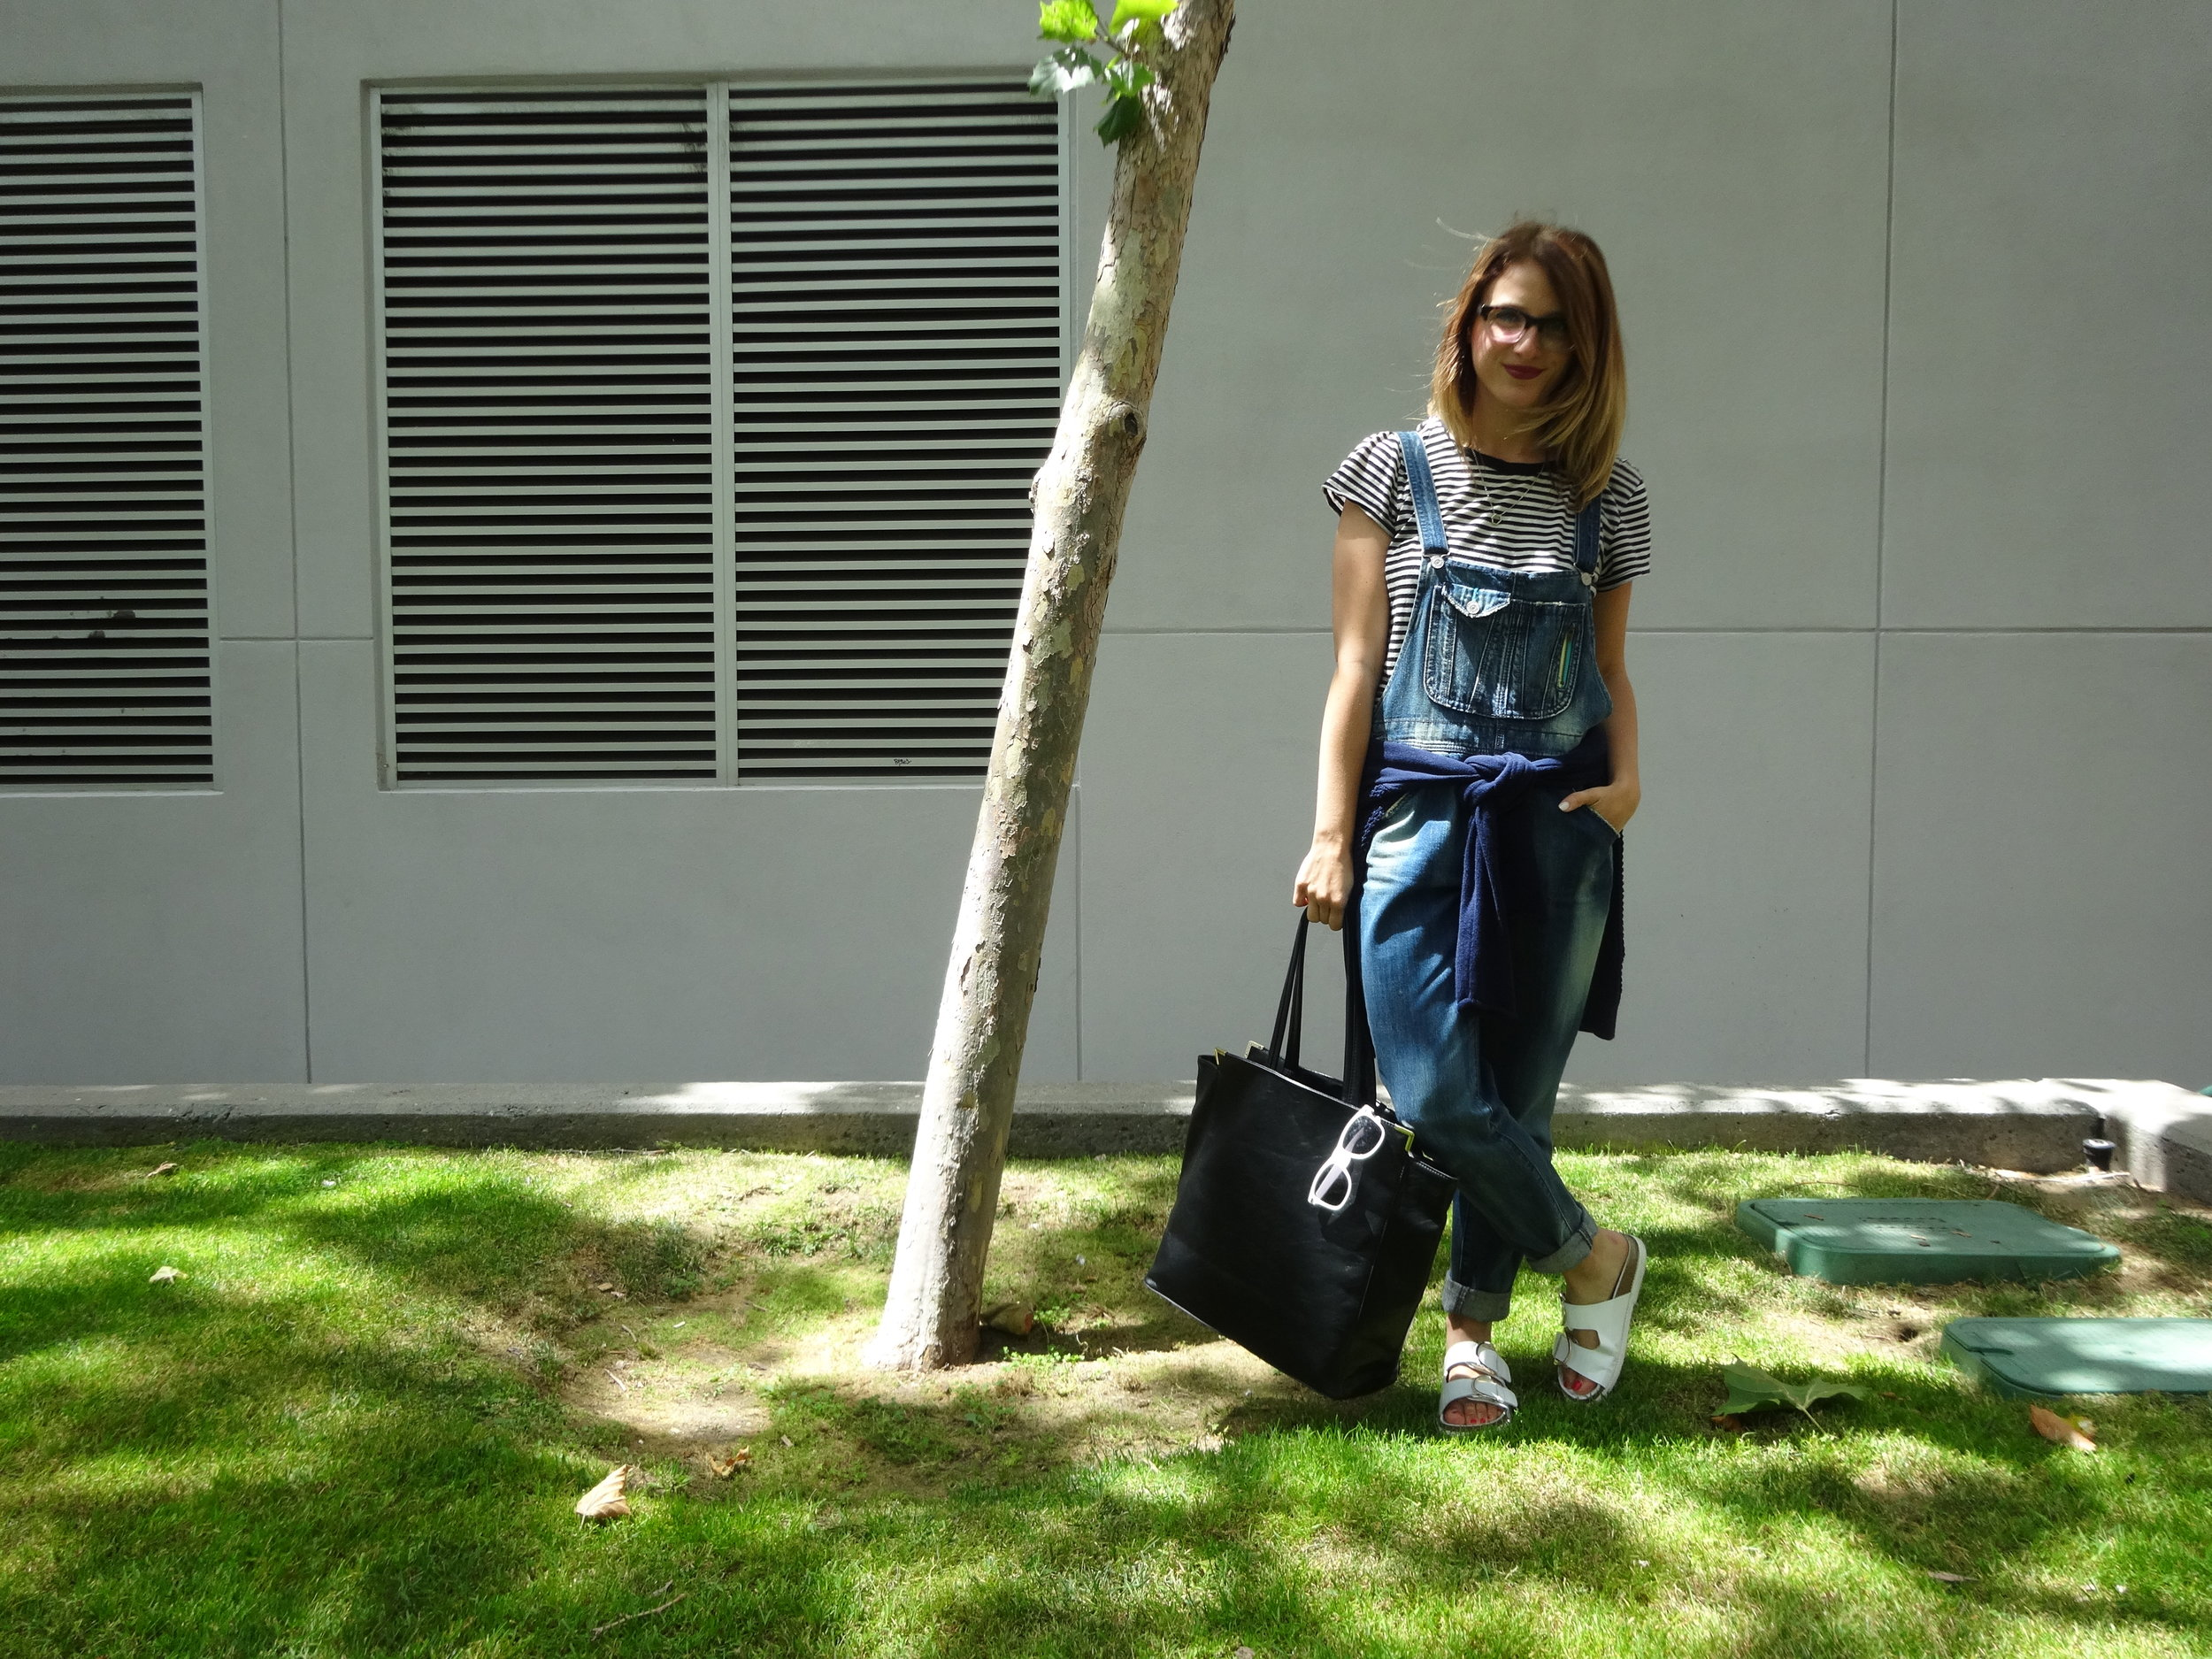 Overalls: Levi's via Crossroads Trading | Shirt: Gap | Sweater: F21 | Shoes: Zara | Bag: F21